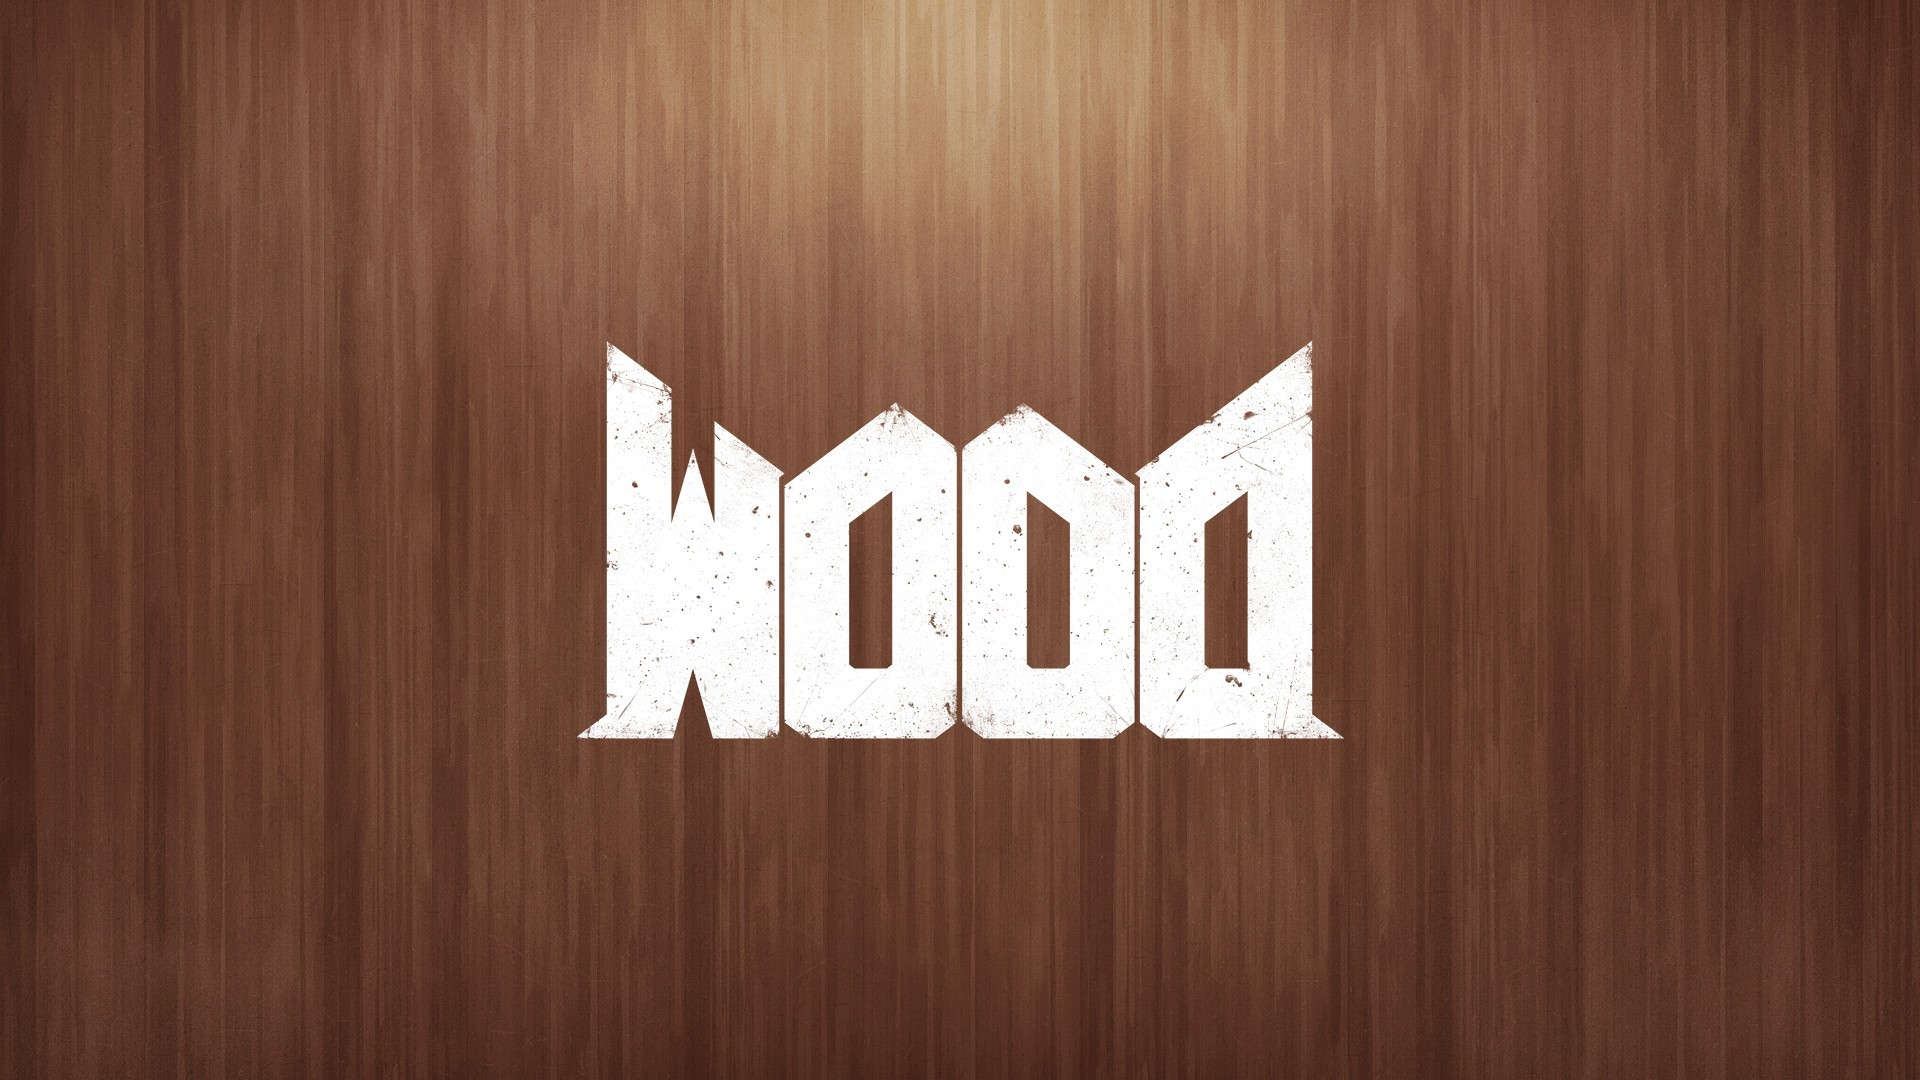 1920x1080 General  wood Doom (game) video games humor upside down letter  text wooden surface